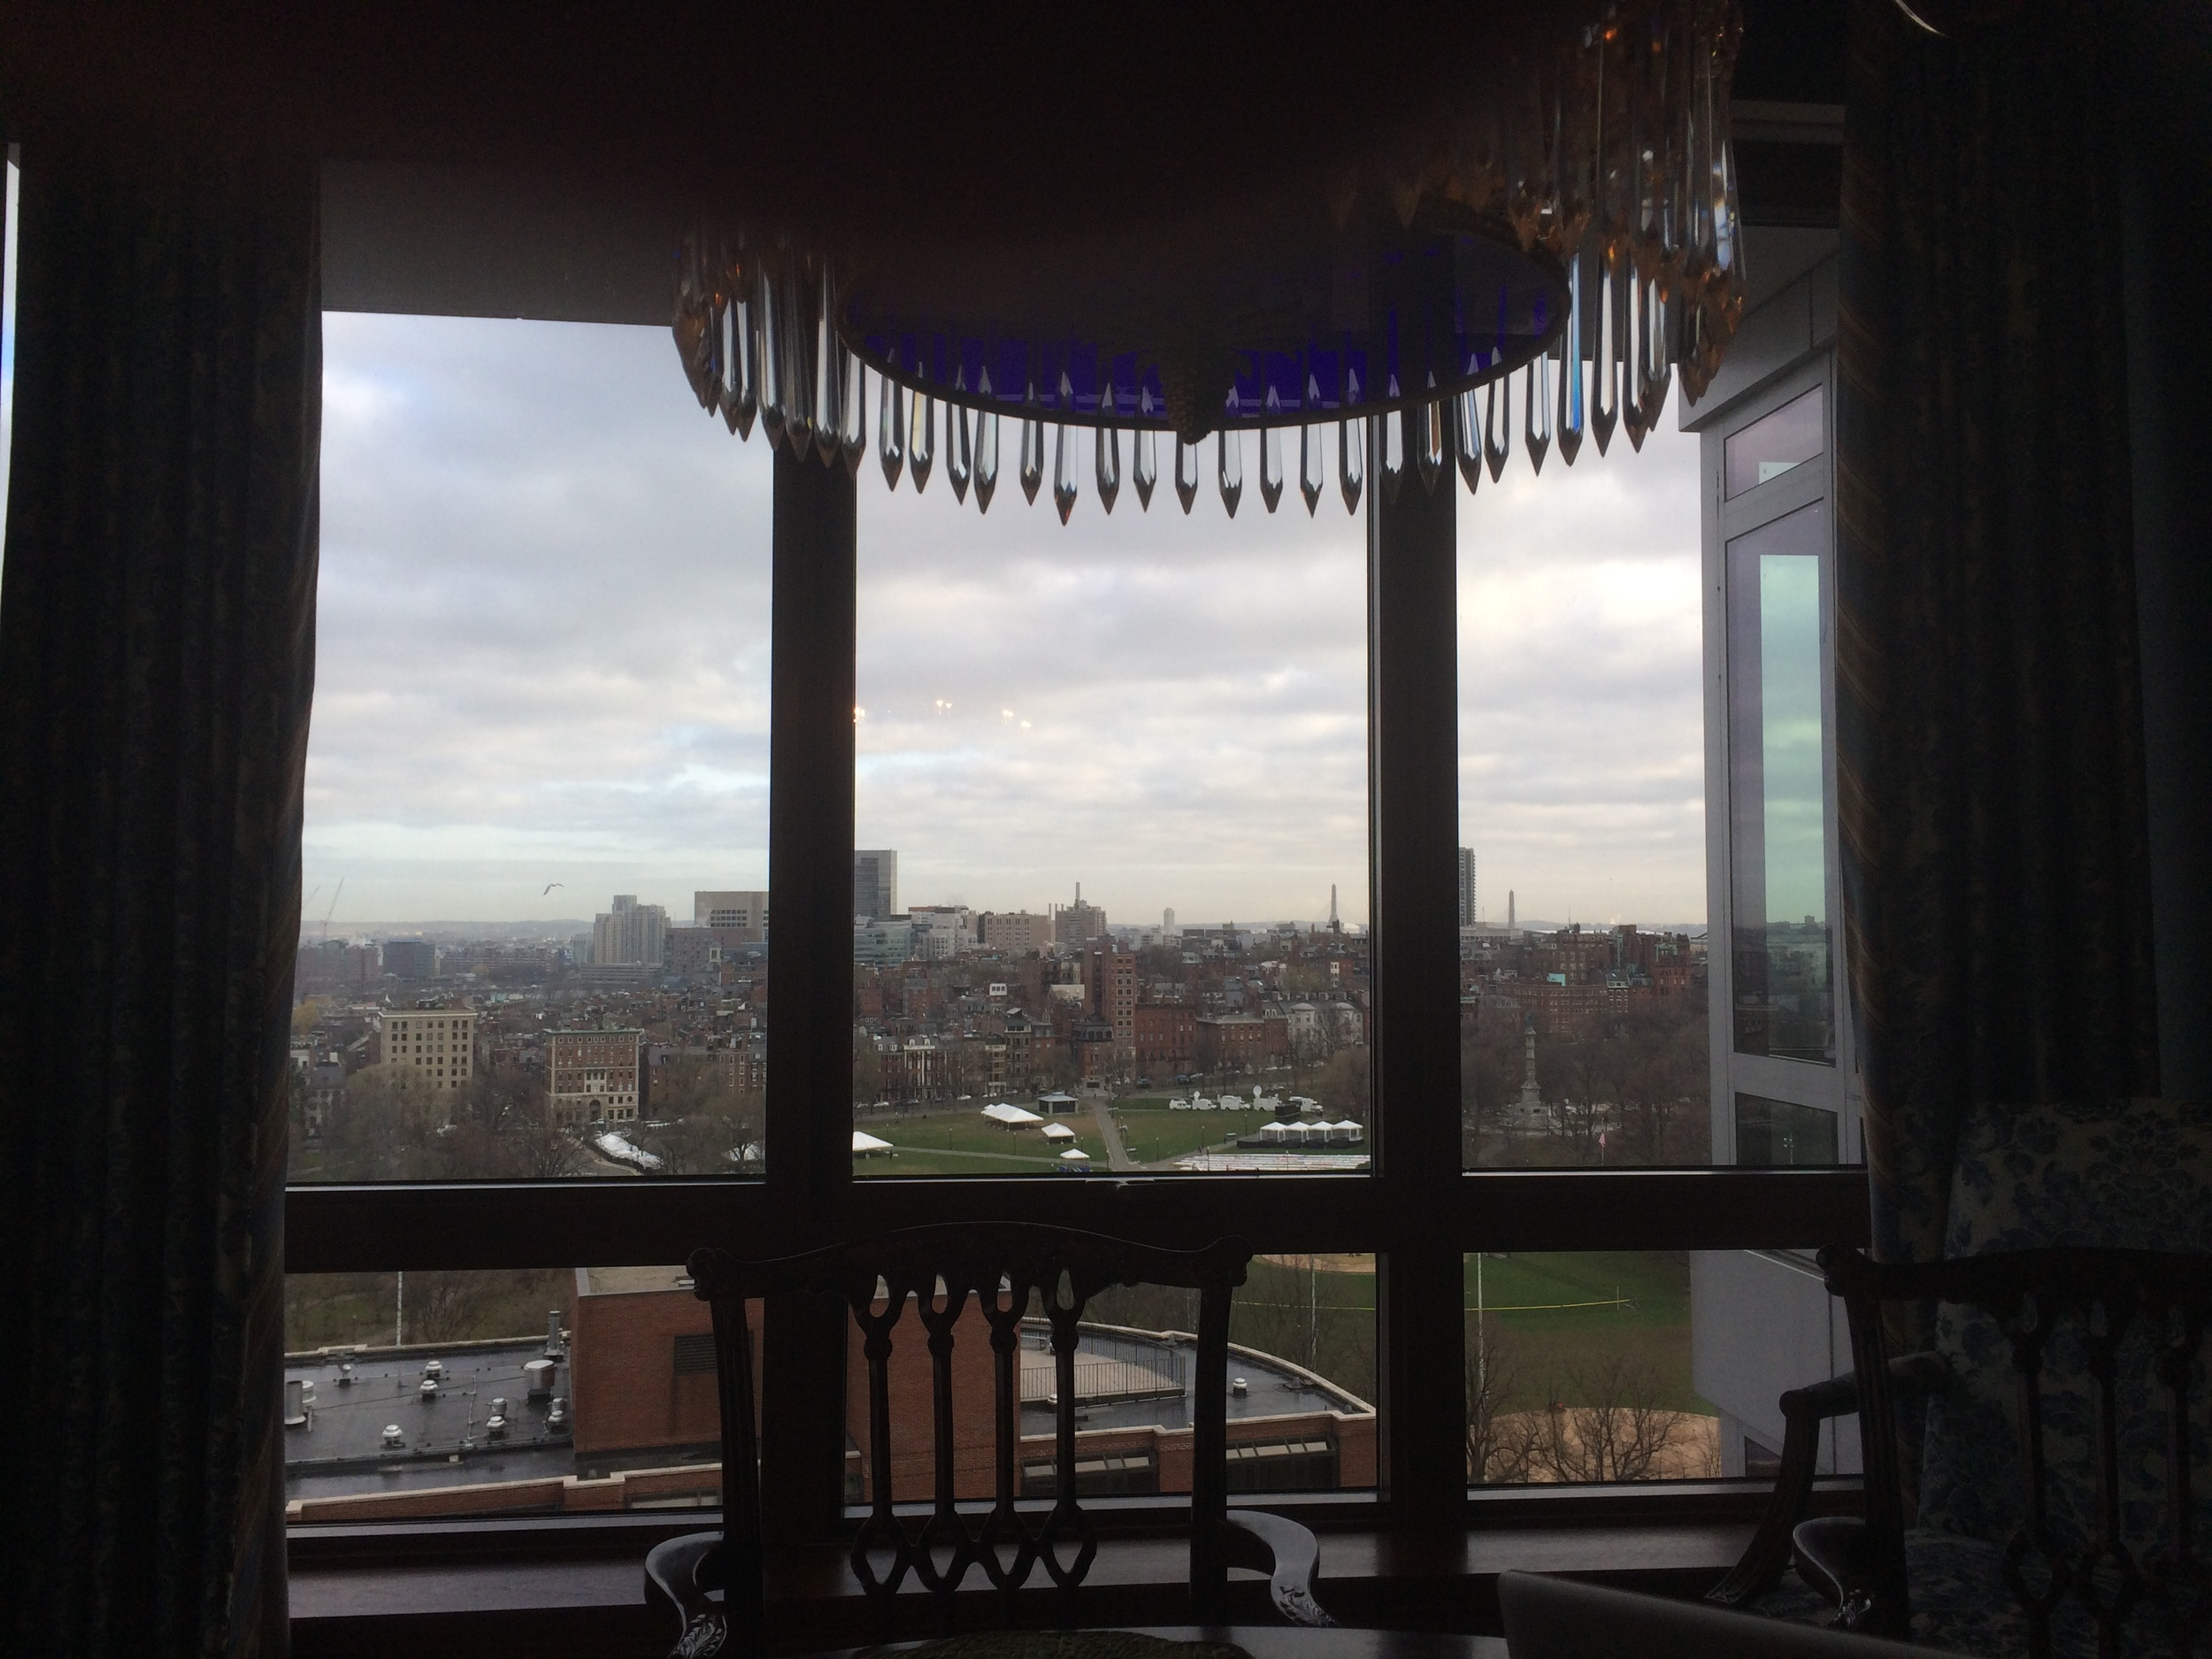 The view from the Penthouse of Stephen and David.